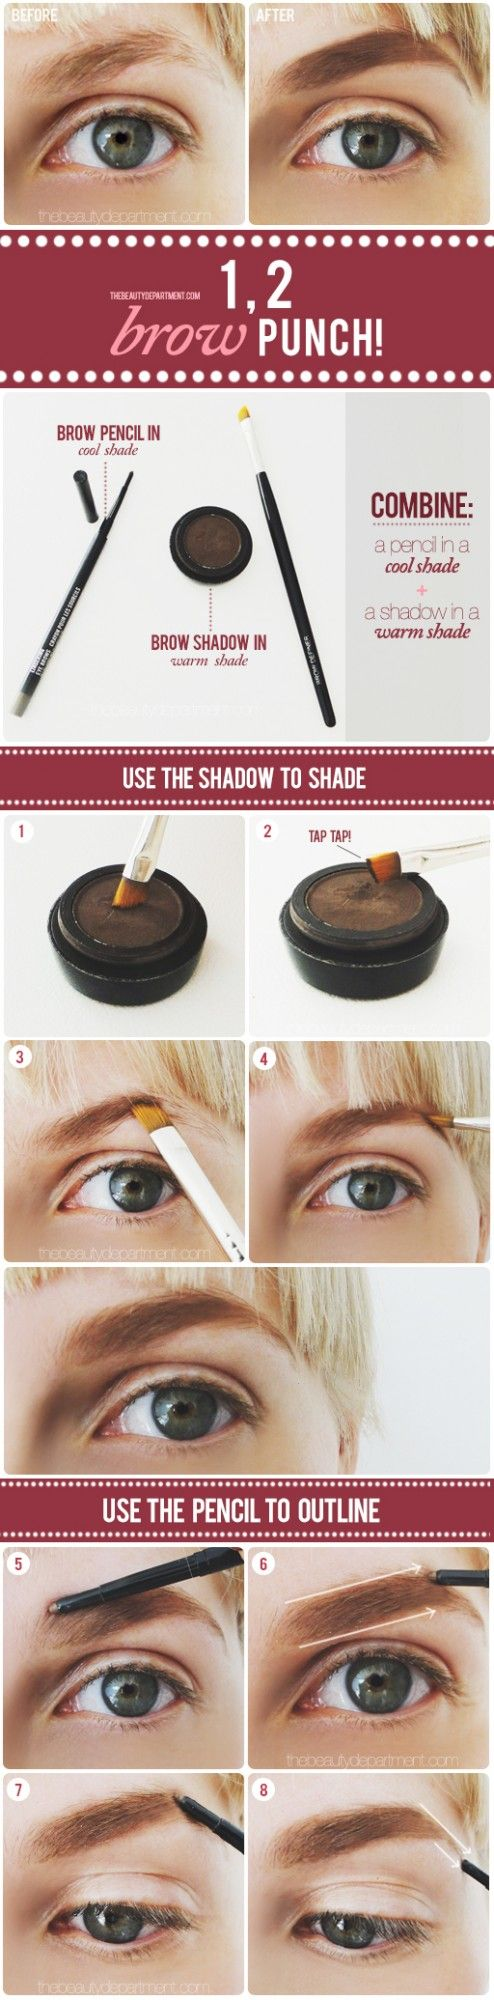 This is how I fill in my brows! But I use #younique liner brush and #younique pigments https://www.youniqueproducts.com/christinamessina/account/myparties